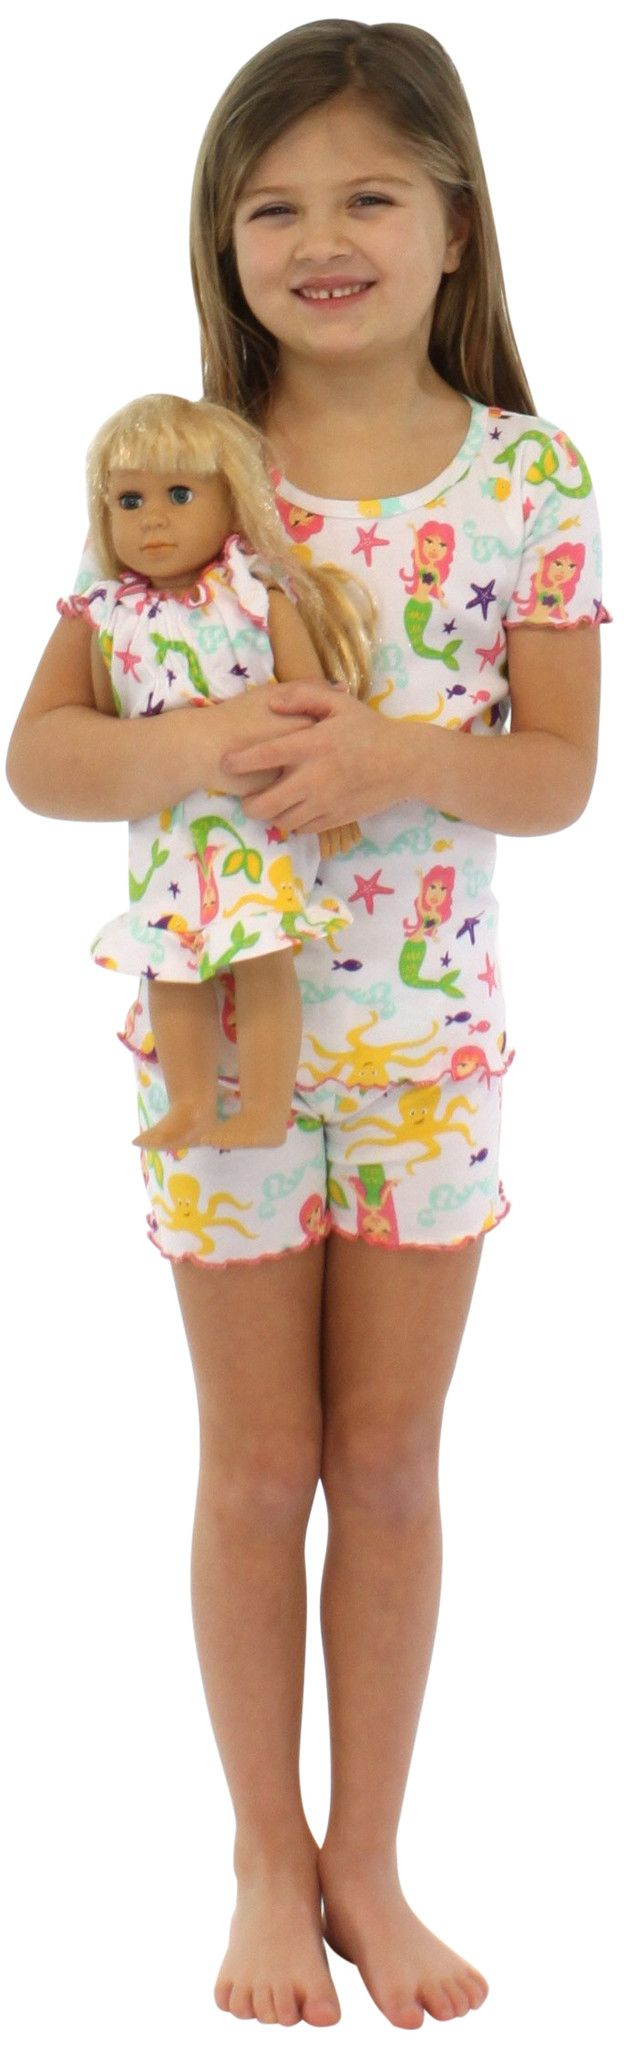 Free shipping on kids' sleepwear at thrushop-06mq49hz.ga Shop for pajamas, robes and footies from the best brands. Totally free shipping and returns.